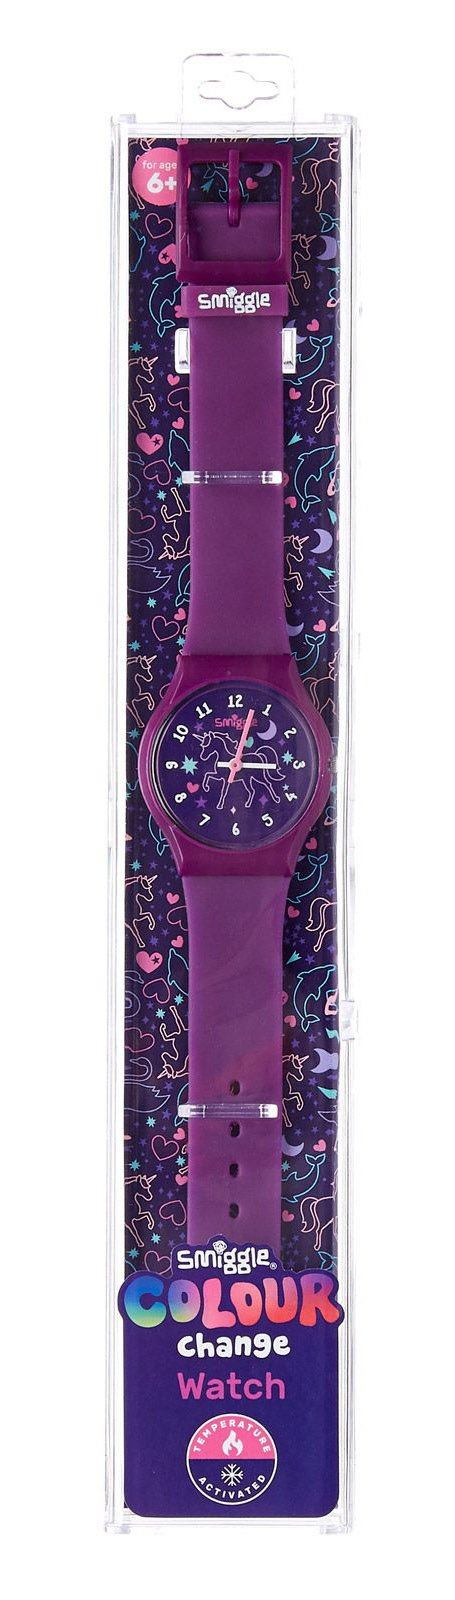 Smiggle Watch Colour Change - Purple Electronics SMIGGLE